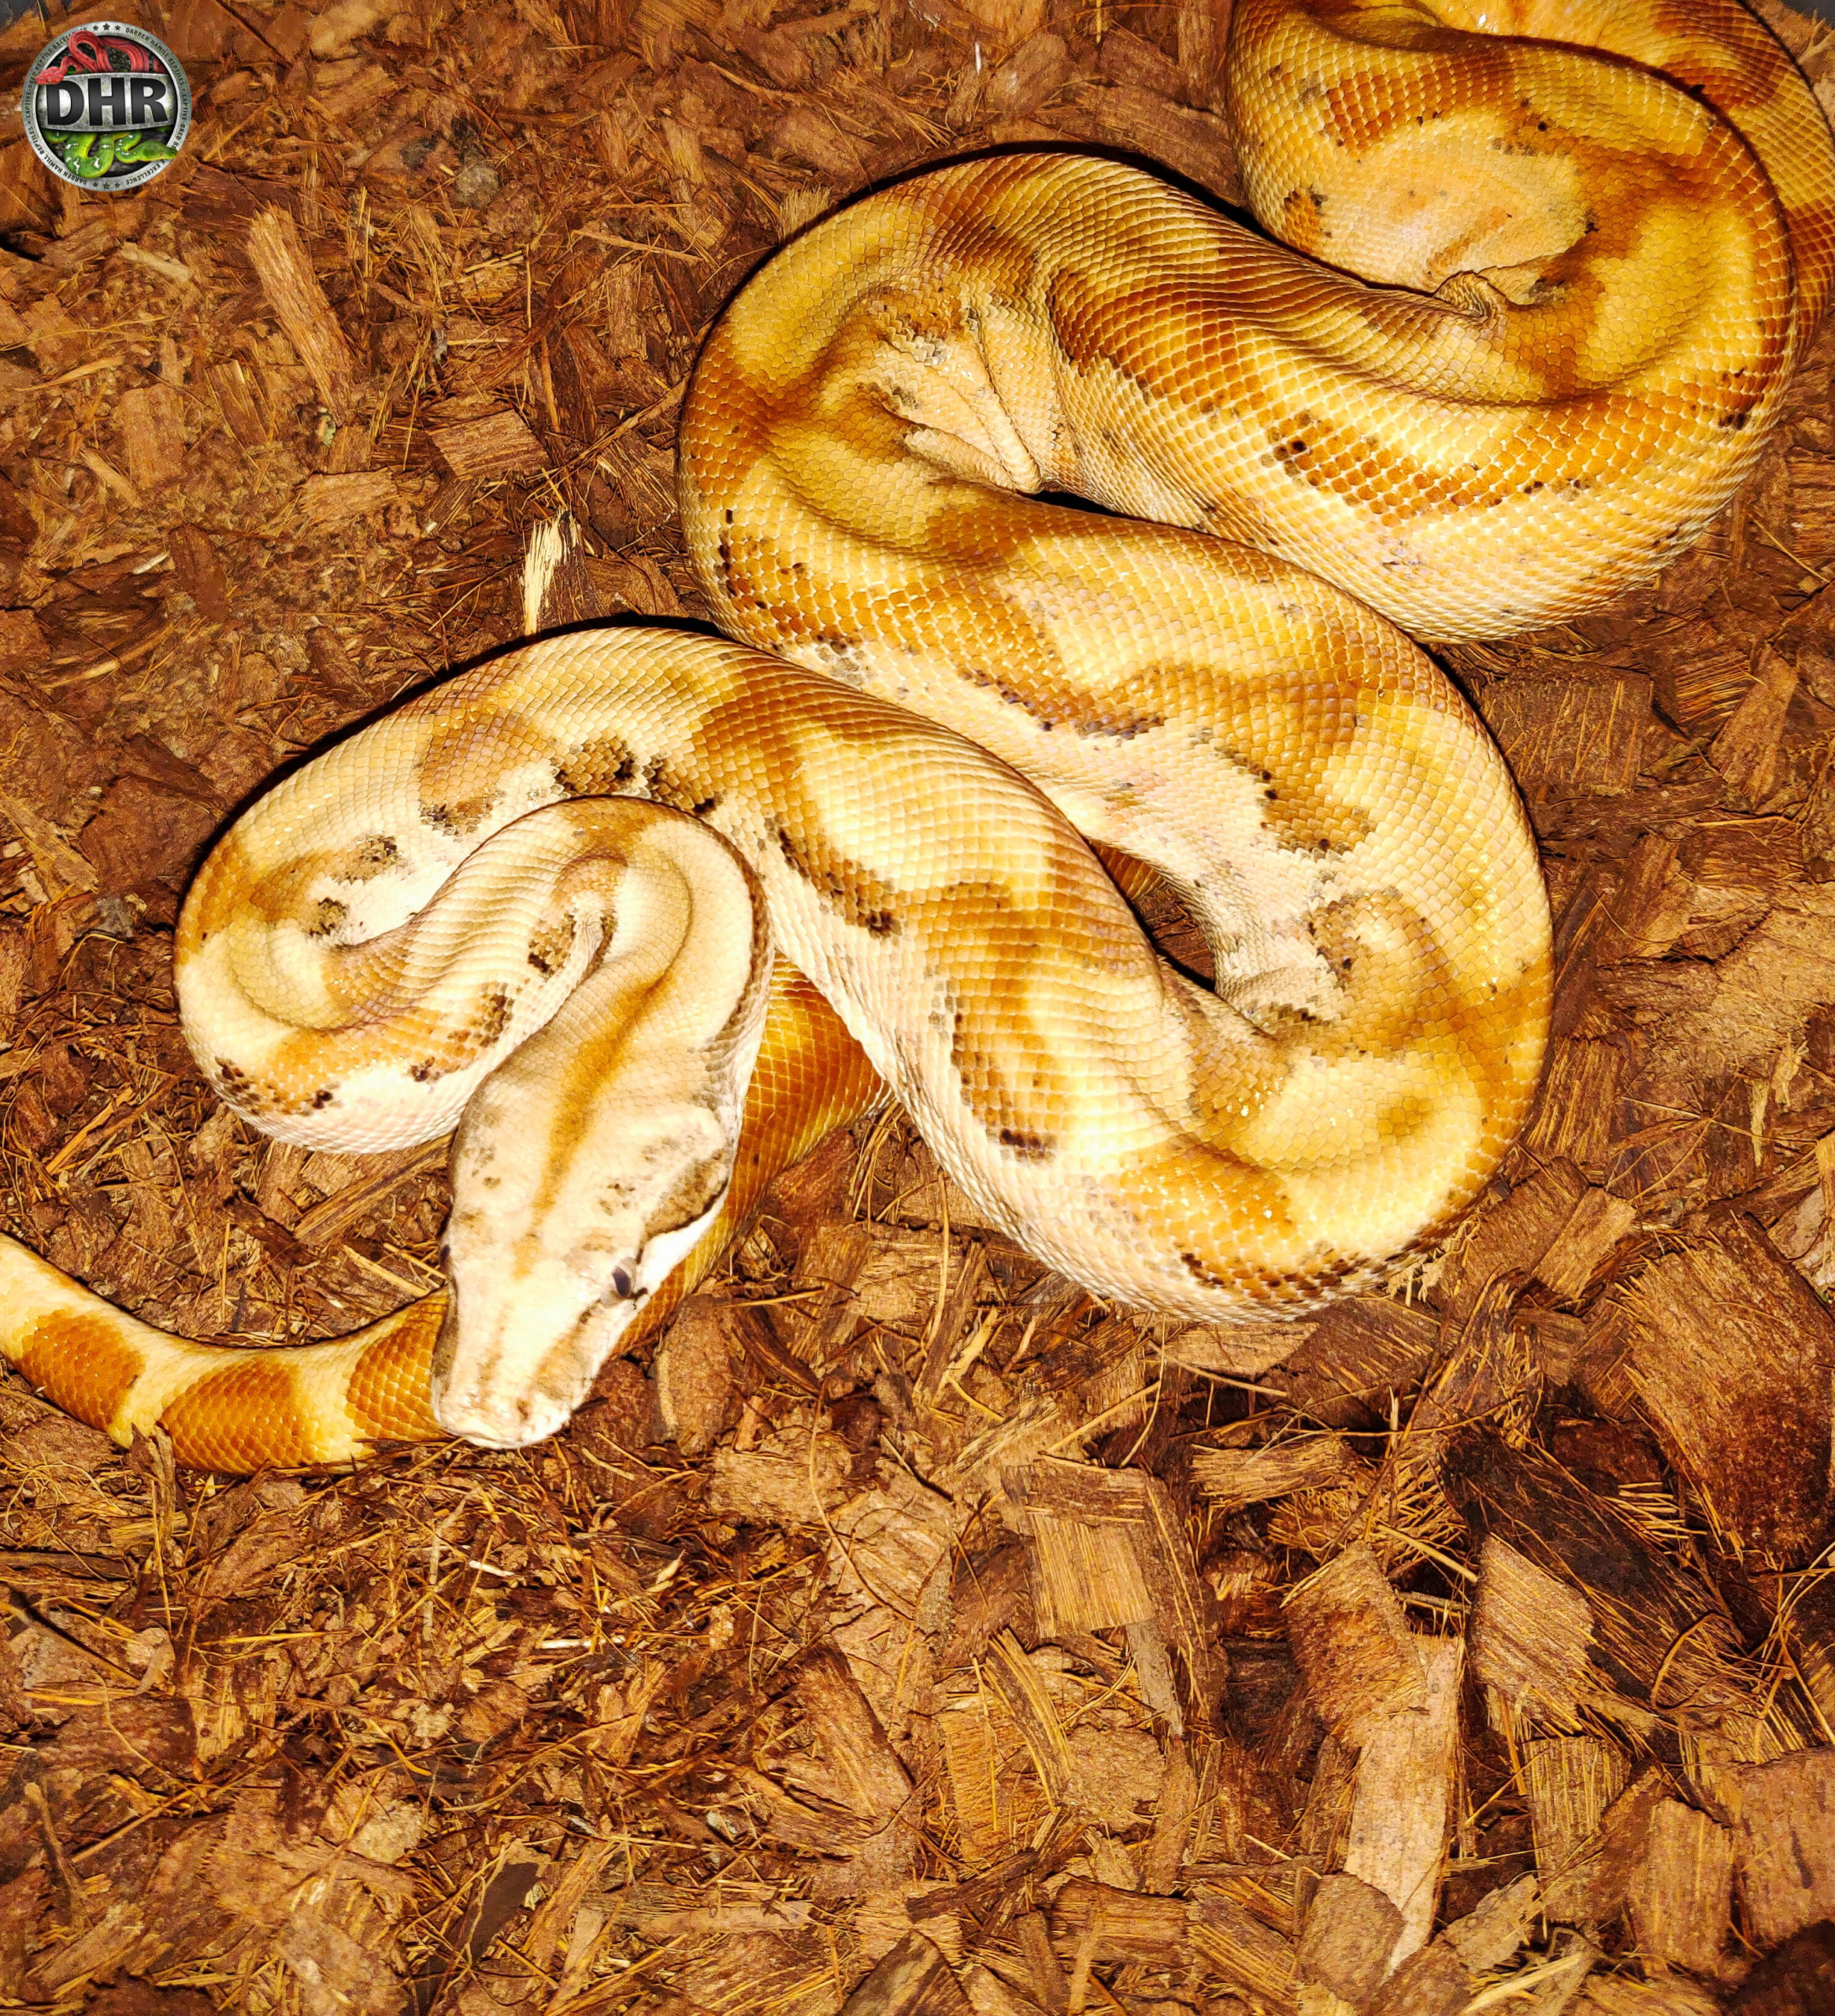 Happy Tuesday! Here's a Super Hypo Nicaraguan Boa for you.